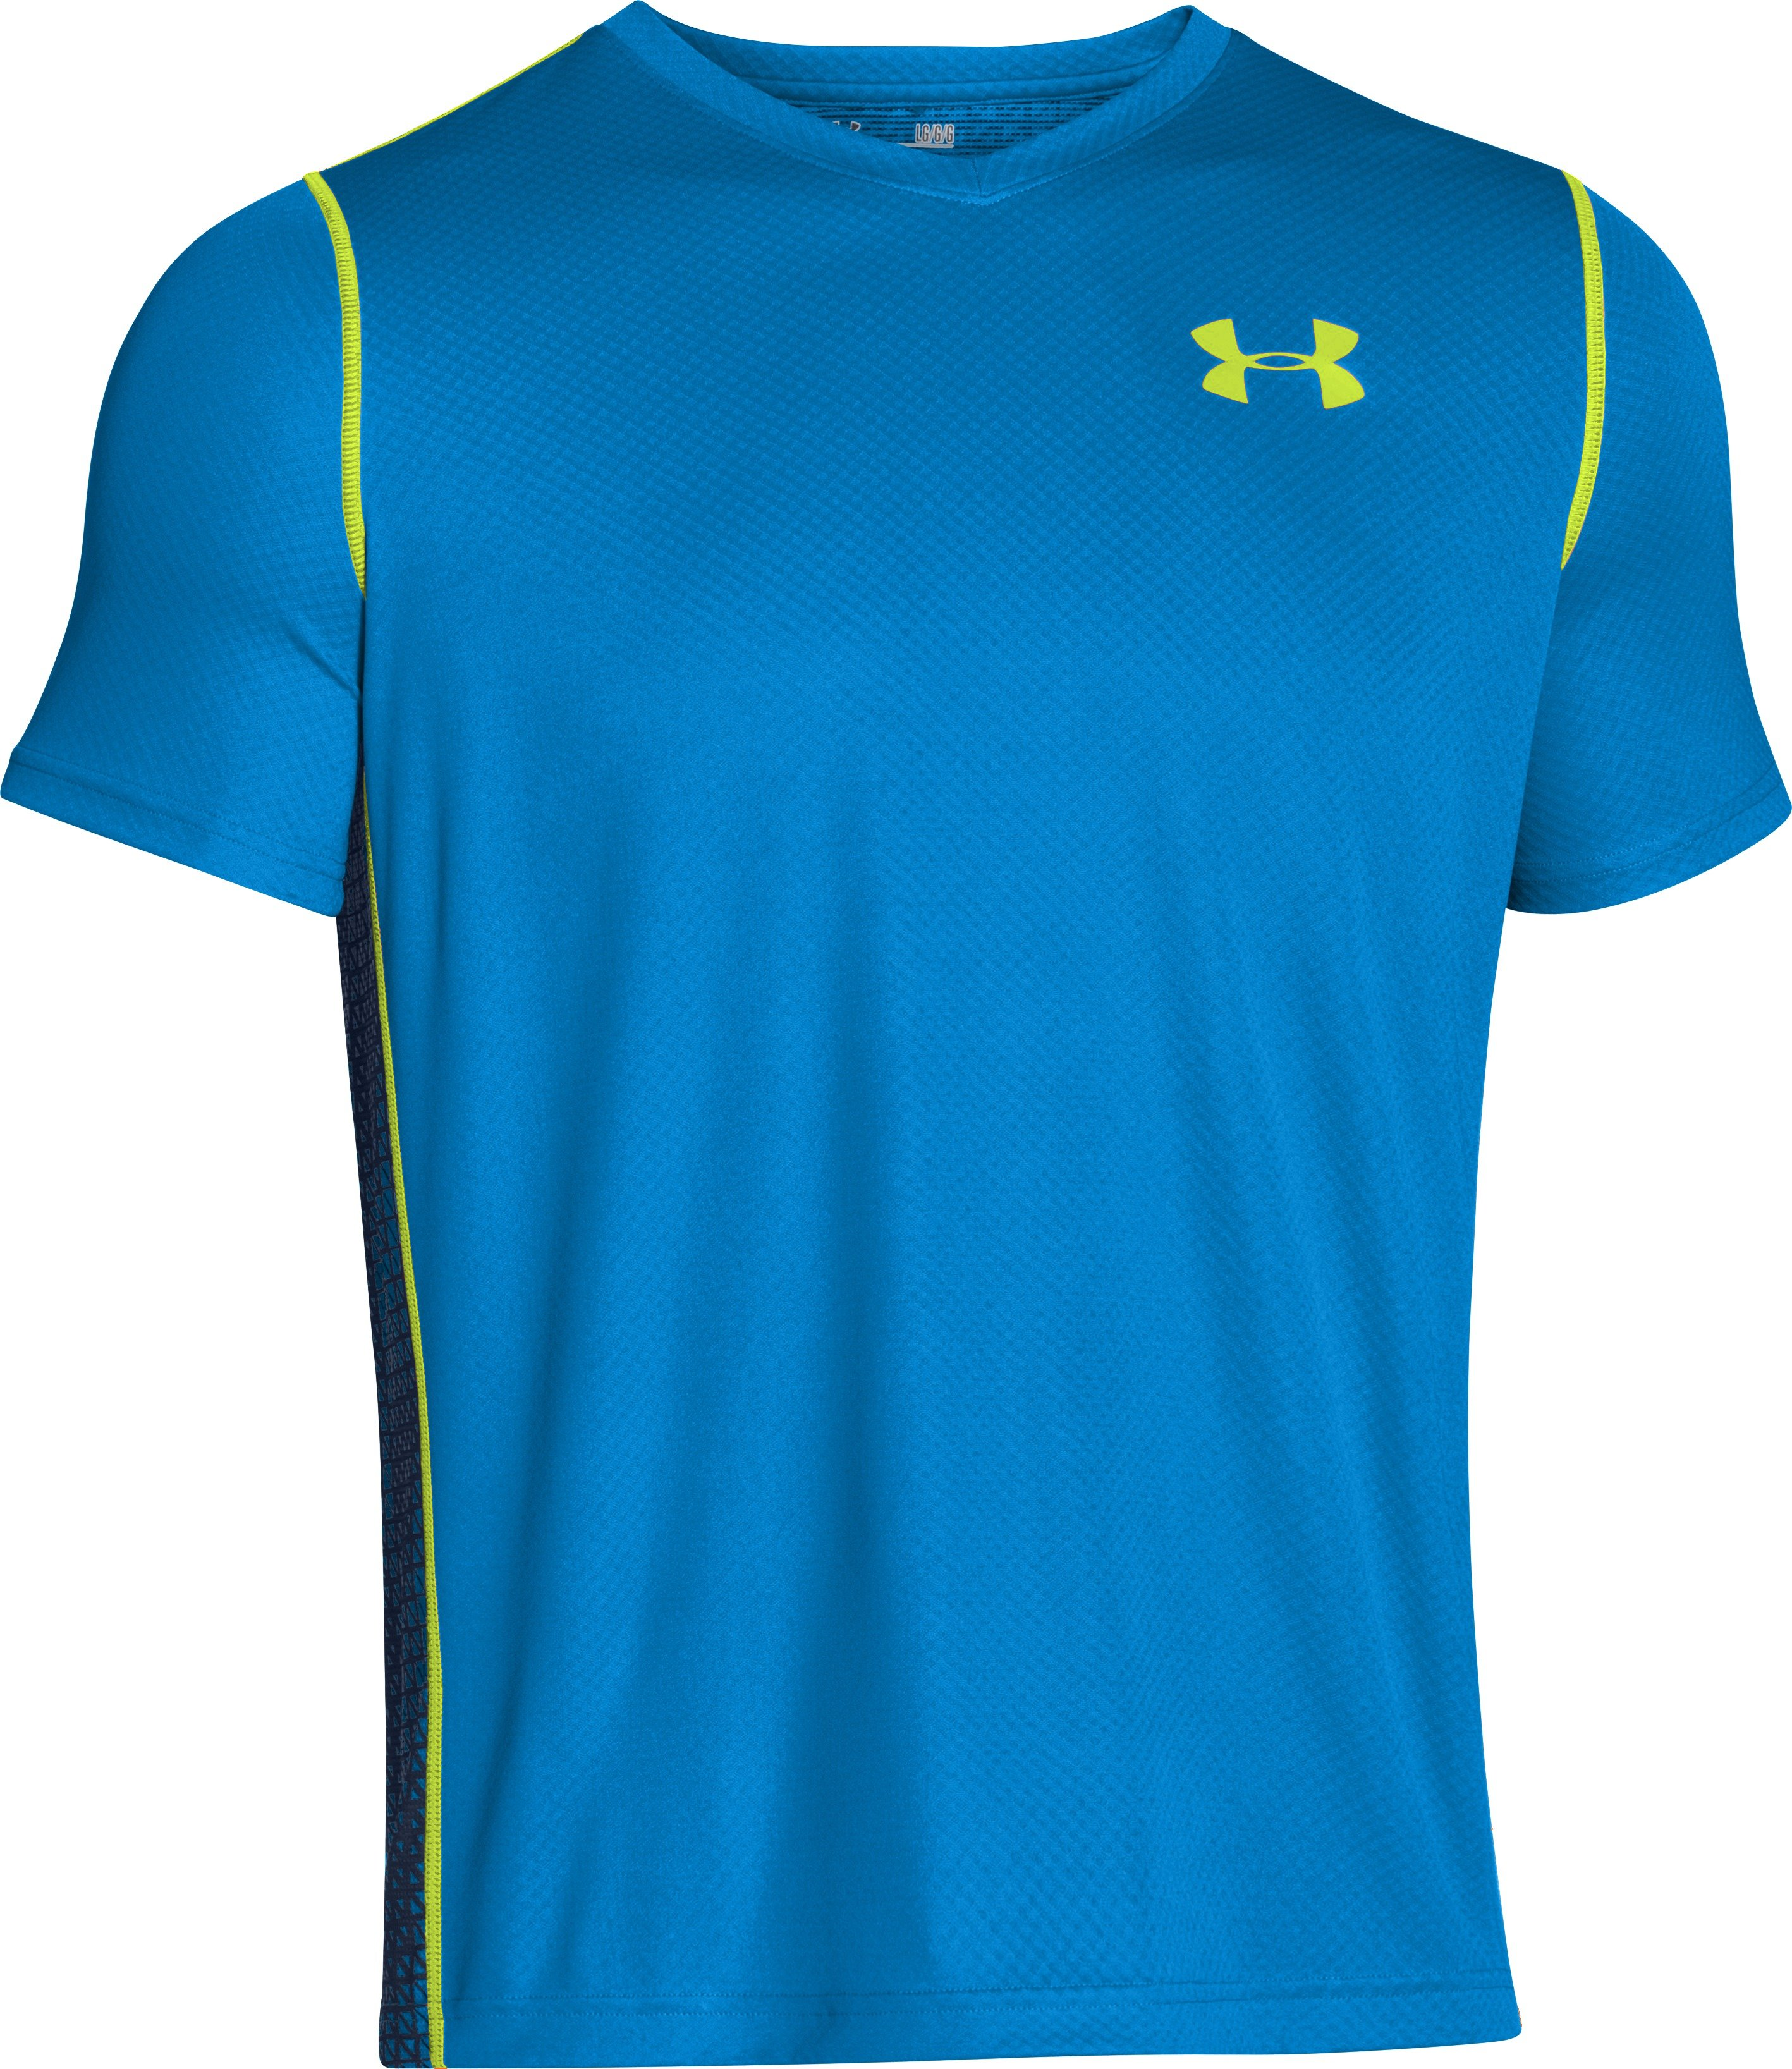 Under Armour Tee-shirt Ventilate M v�tement running homme